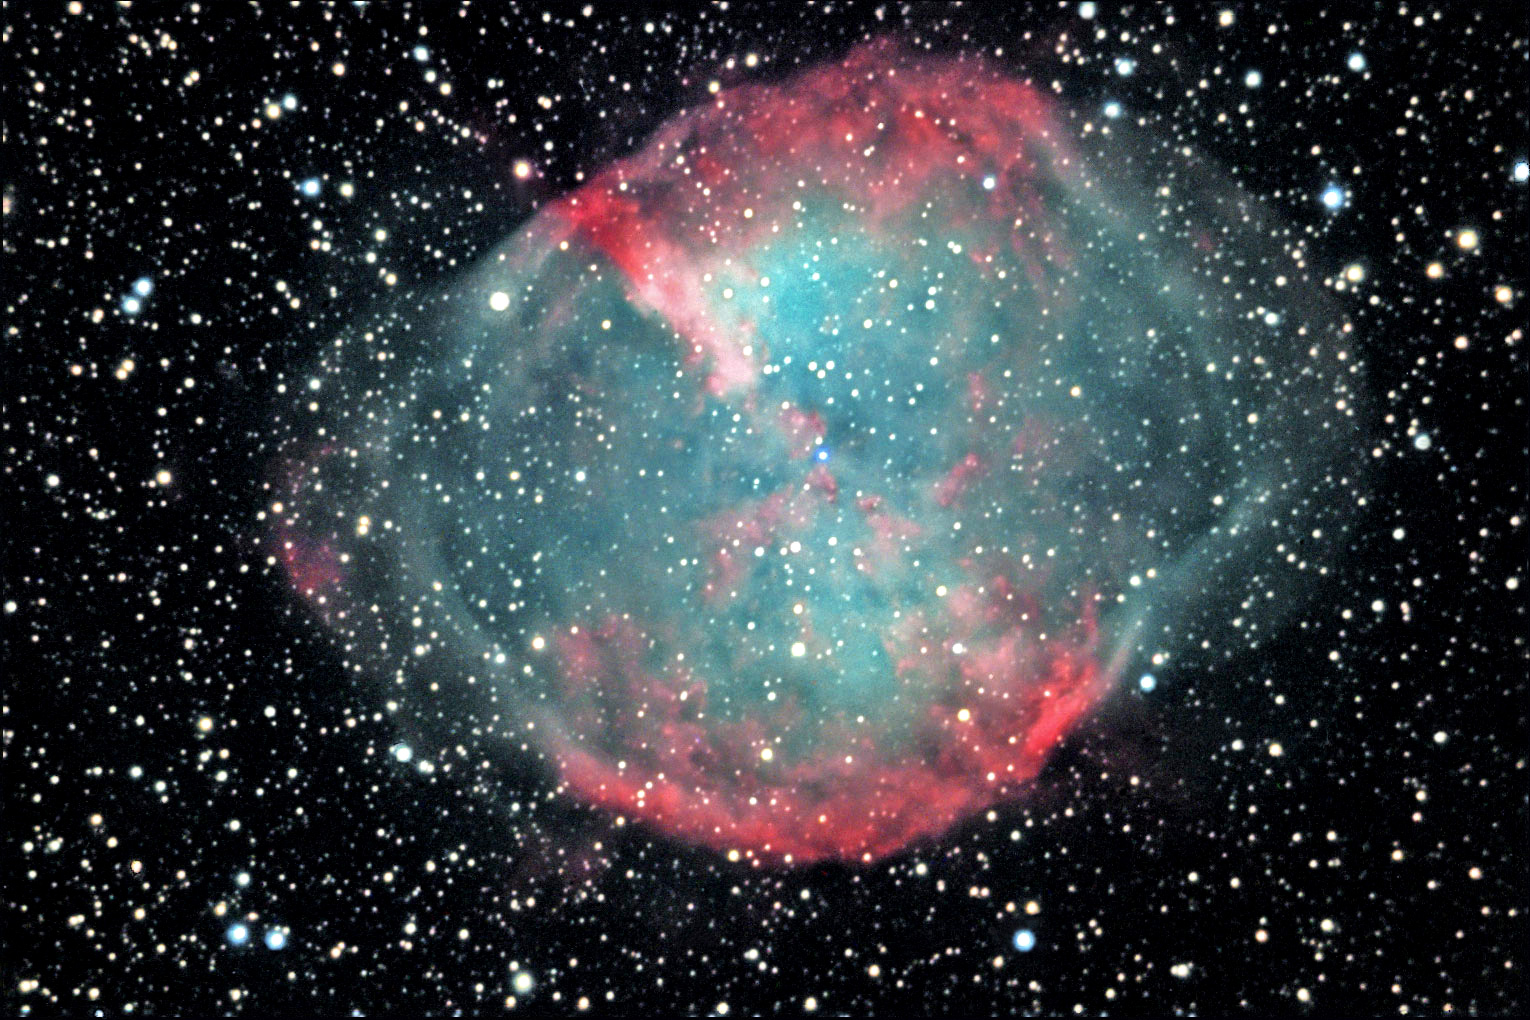 M27 in Velpecula The Dumbbell Nebula